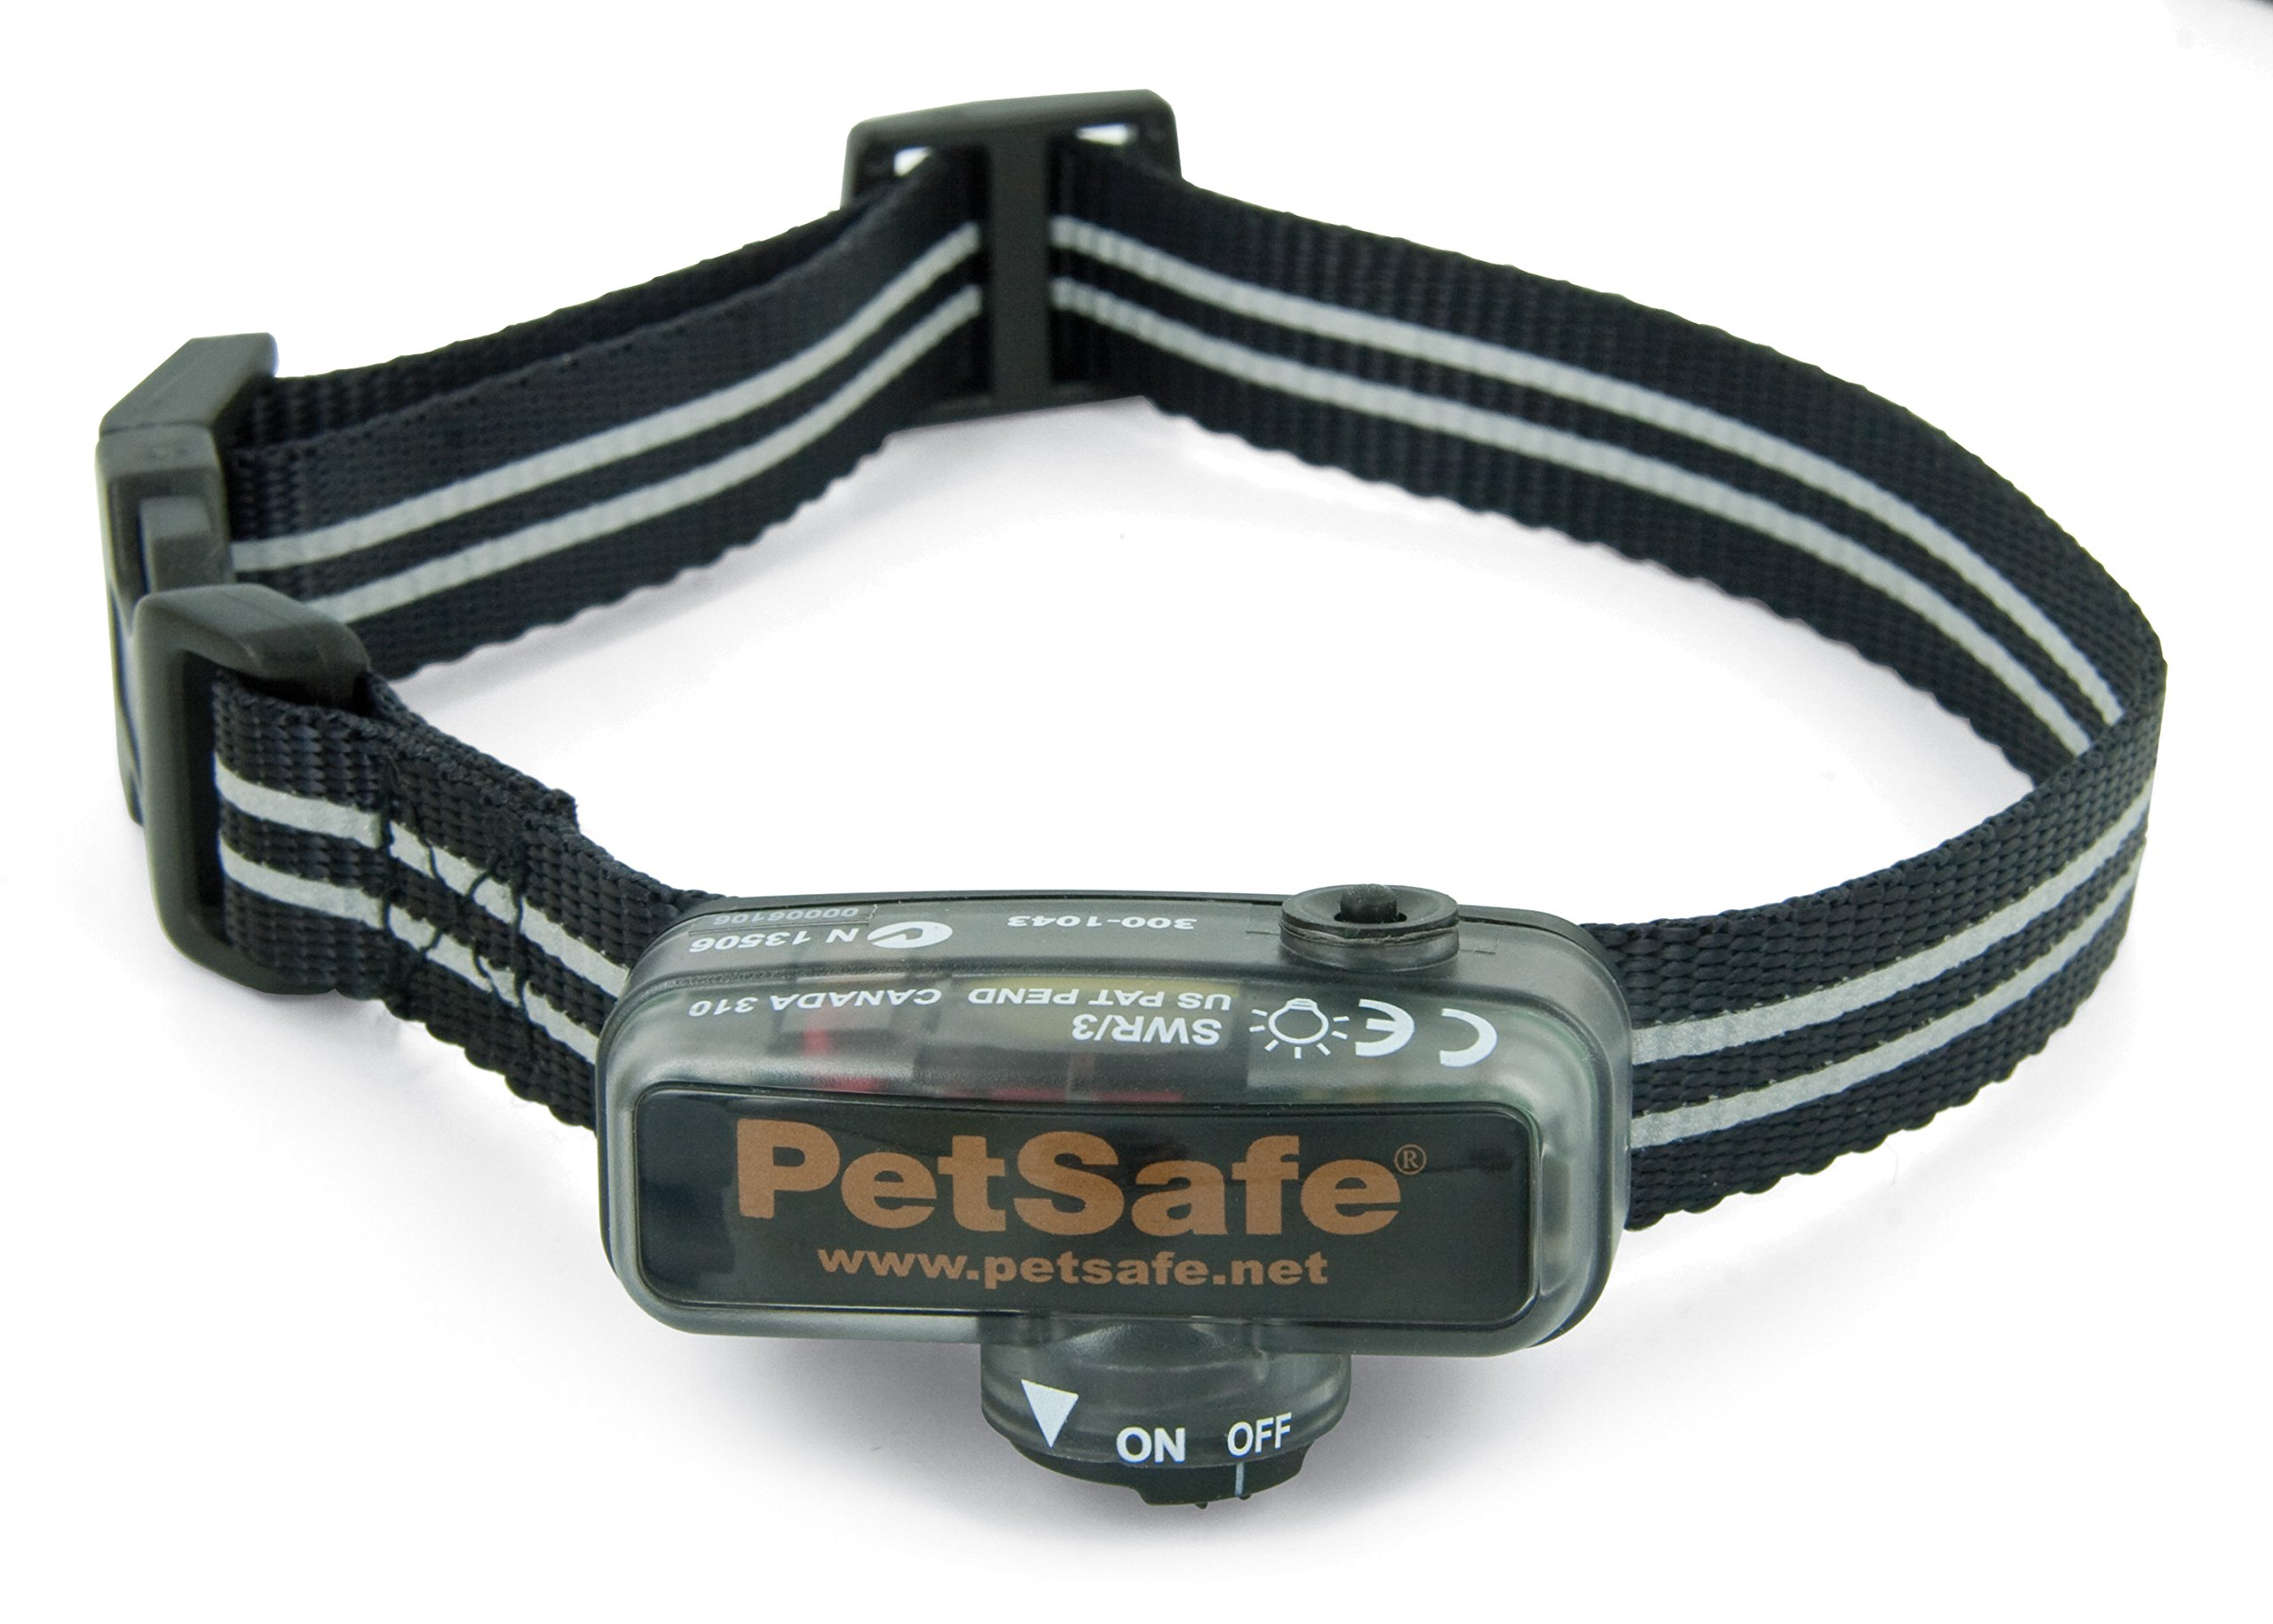 PetSafe Elite Little Dog In-Ground Fence Receiver Collar, for Dogs over 5lb, Waterproof with Tone and Static Stimulation by PetSafe